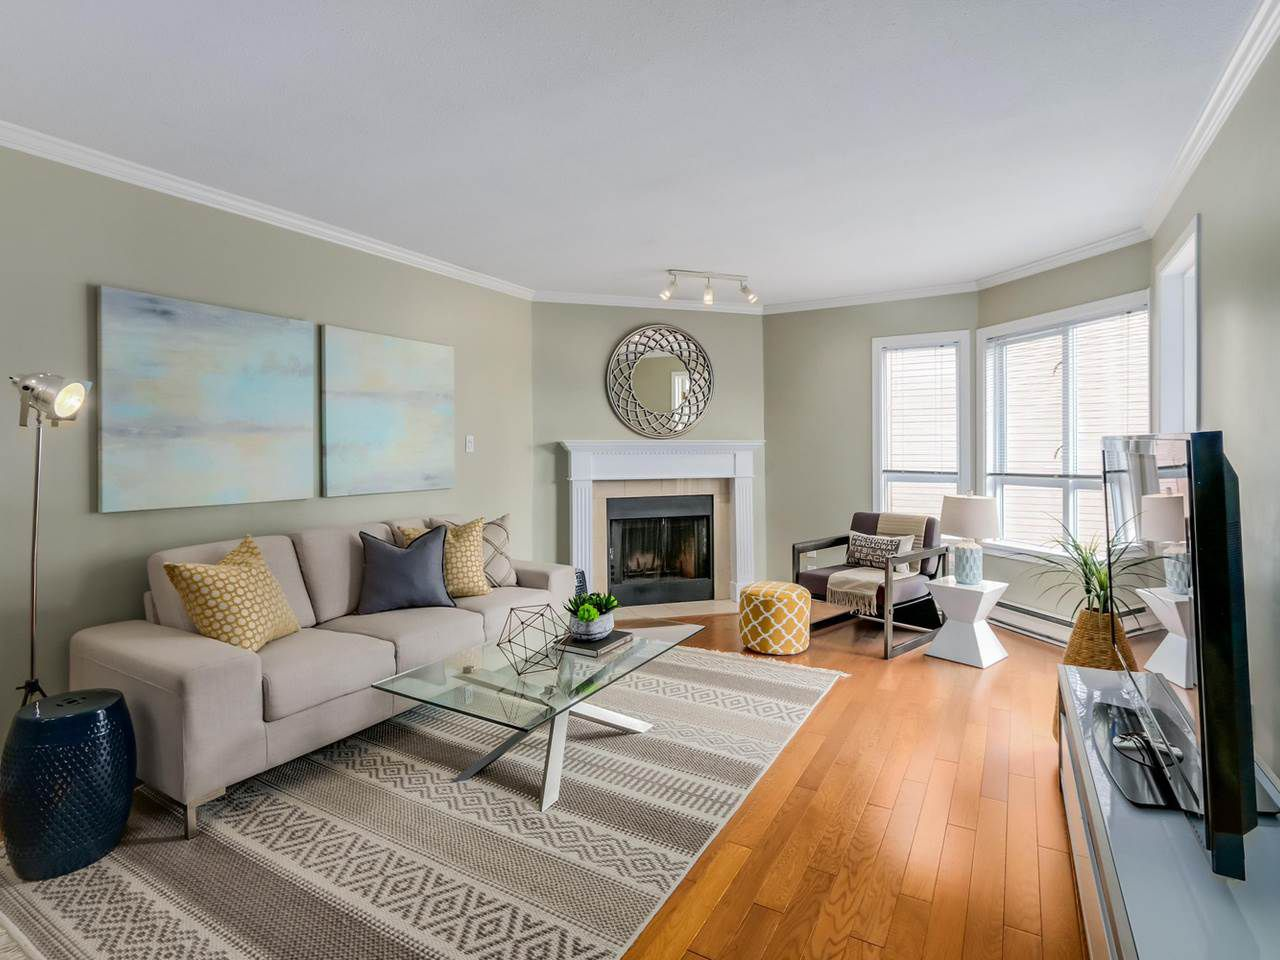 """Main Photo: 312 555 W 14TH Avenue in Vancouver: Fairview VW Condo for sale in """"CAMBRIDGE PLACE"""" (Vancouver West)  : MLS®# R2076585"""